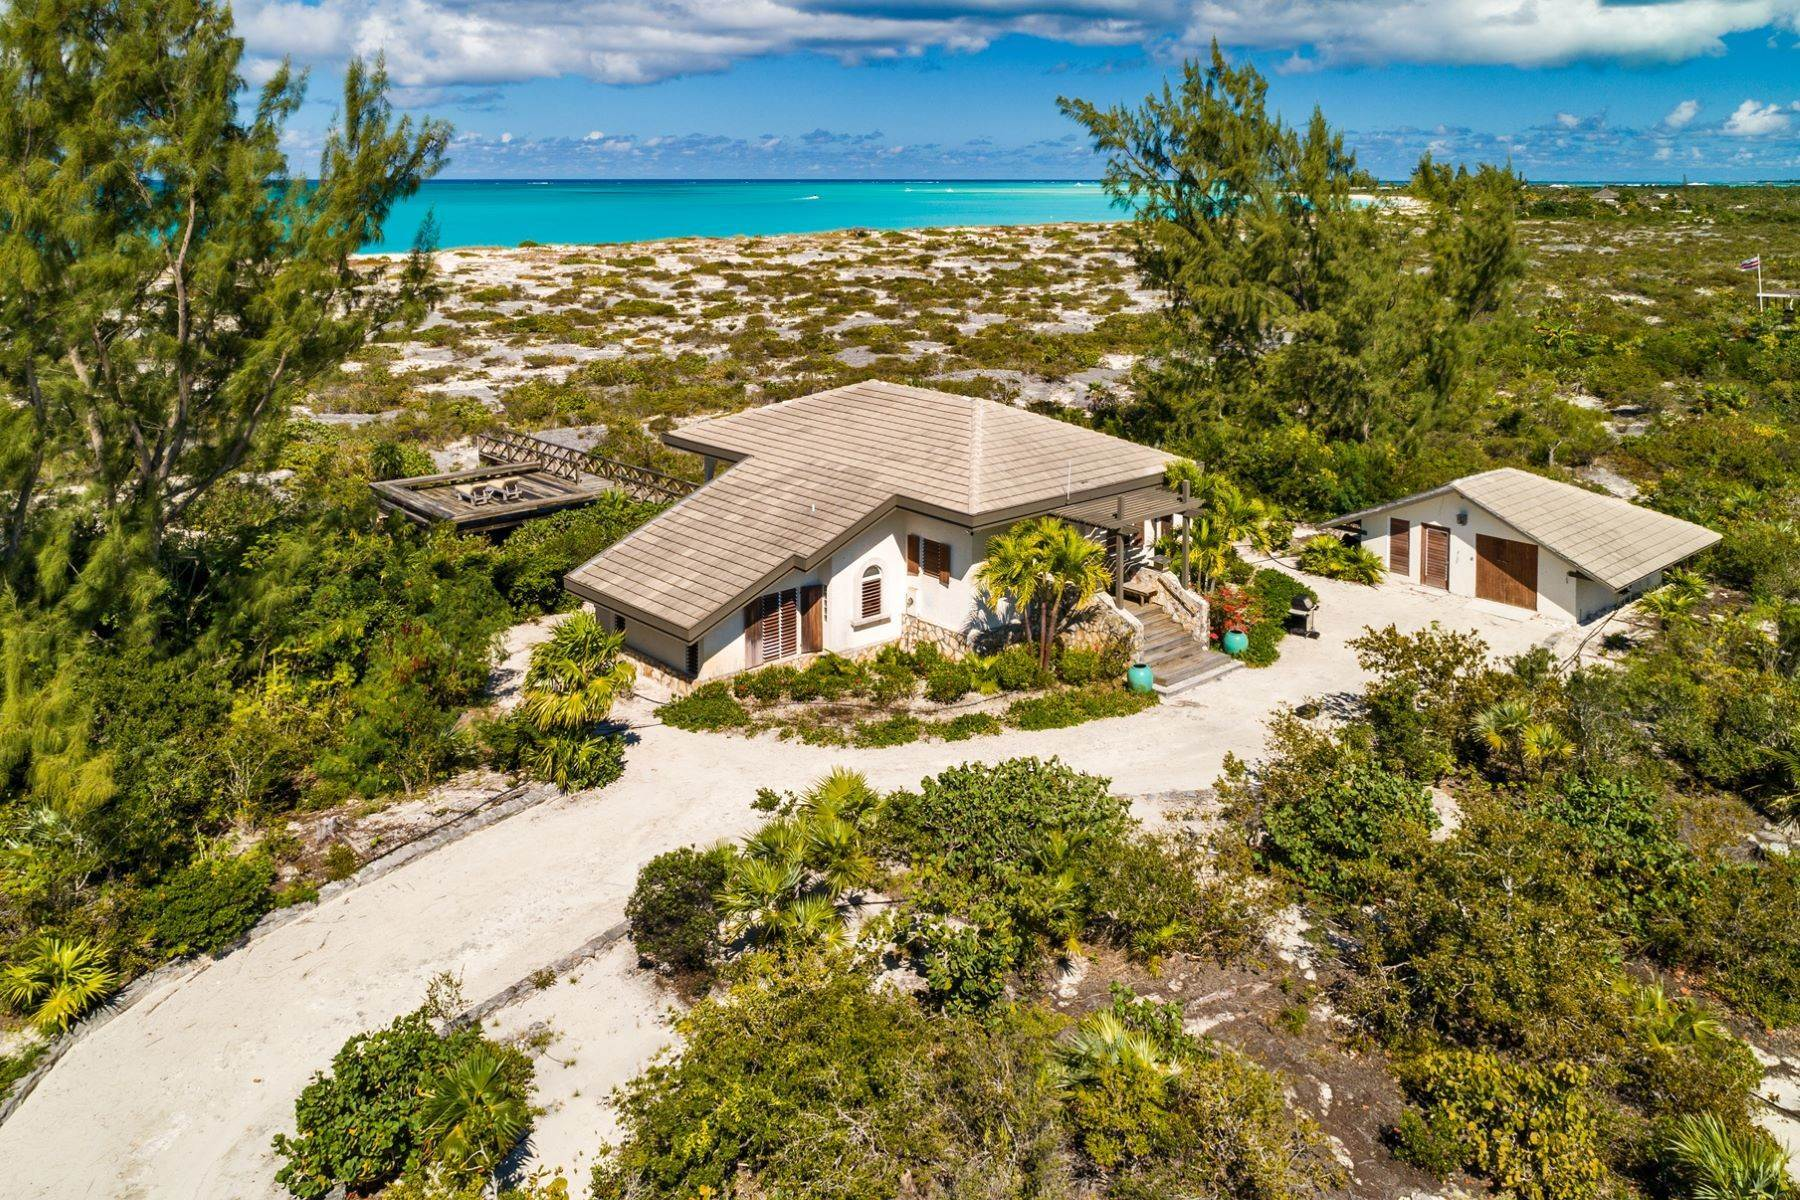 22. Single Family Homes for Sale at Casuarinas Cottage Pine Cay Pine Cay, Pine Cay TCI BWI Turks And Caicos Islands